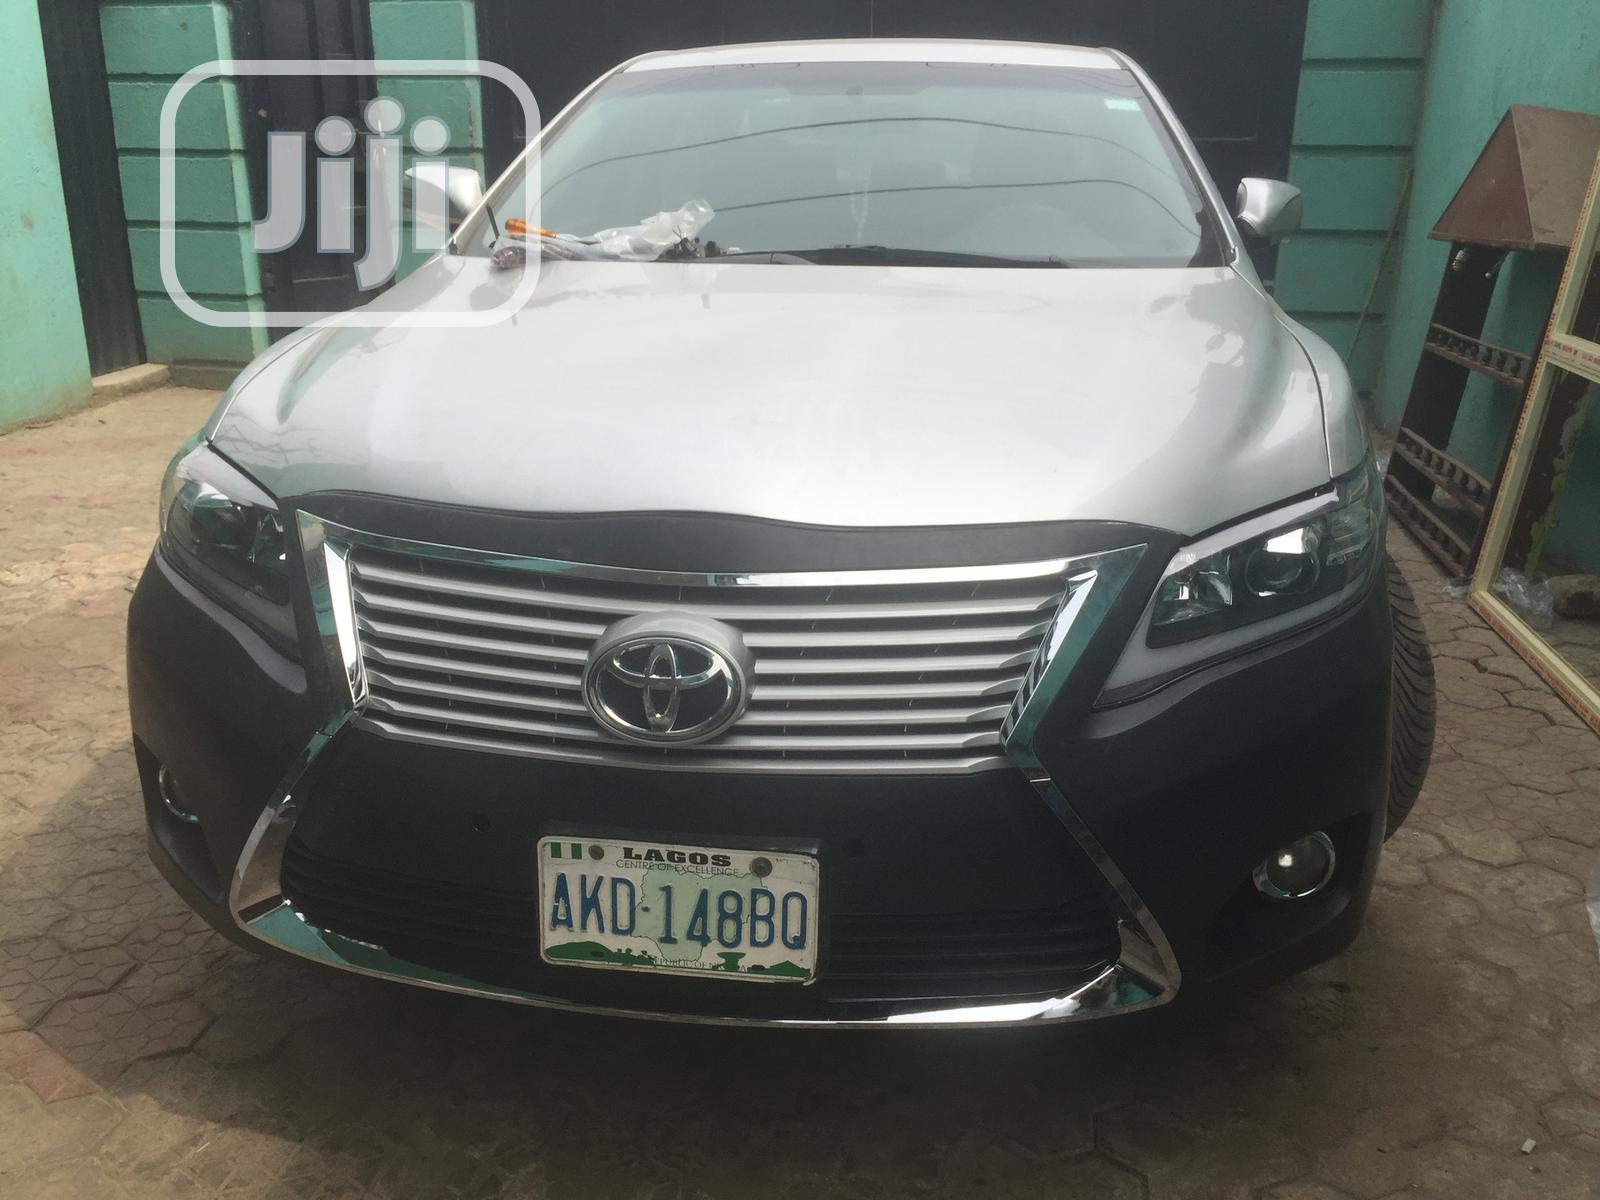 Upgrade Your Camry 2008 To 2010 Lexus Face | Automotive Services for sale in Mushin, Lagos State, Nigeria